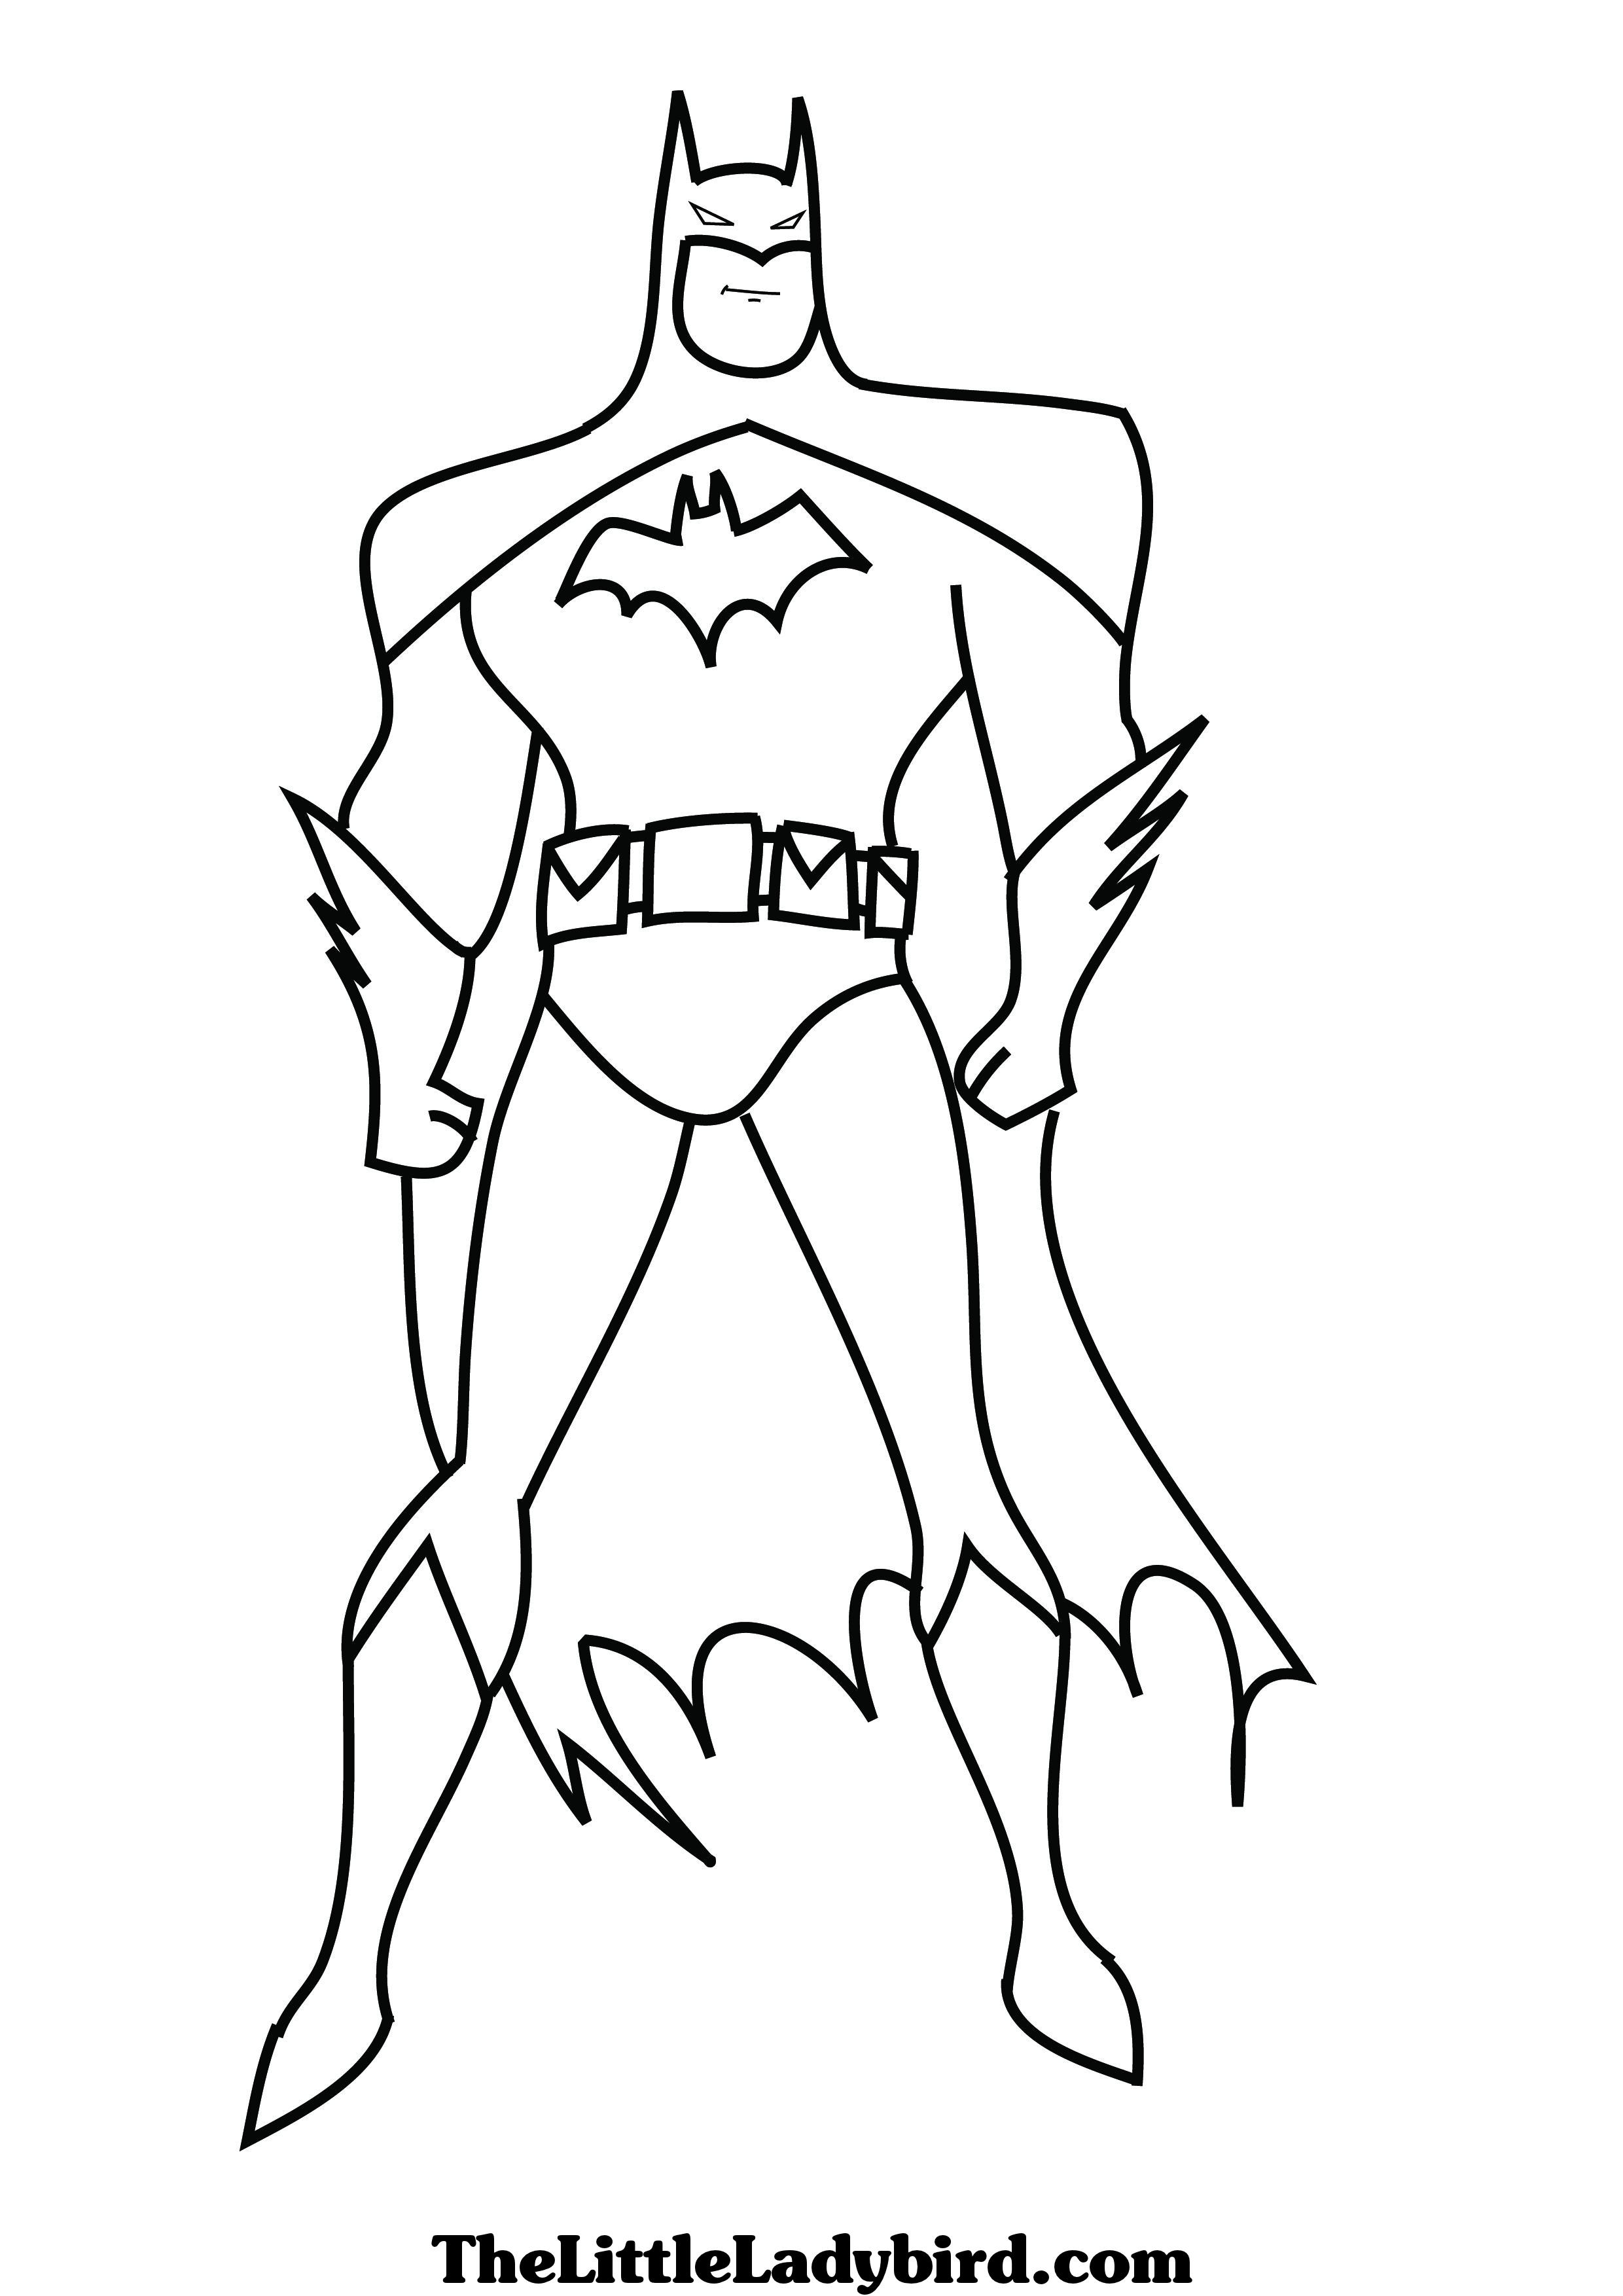 batman coloring pages Coloring pages of batman printableloring image jpg